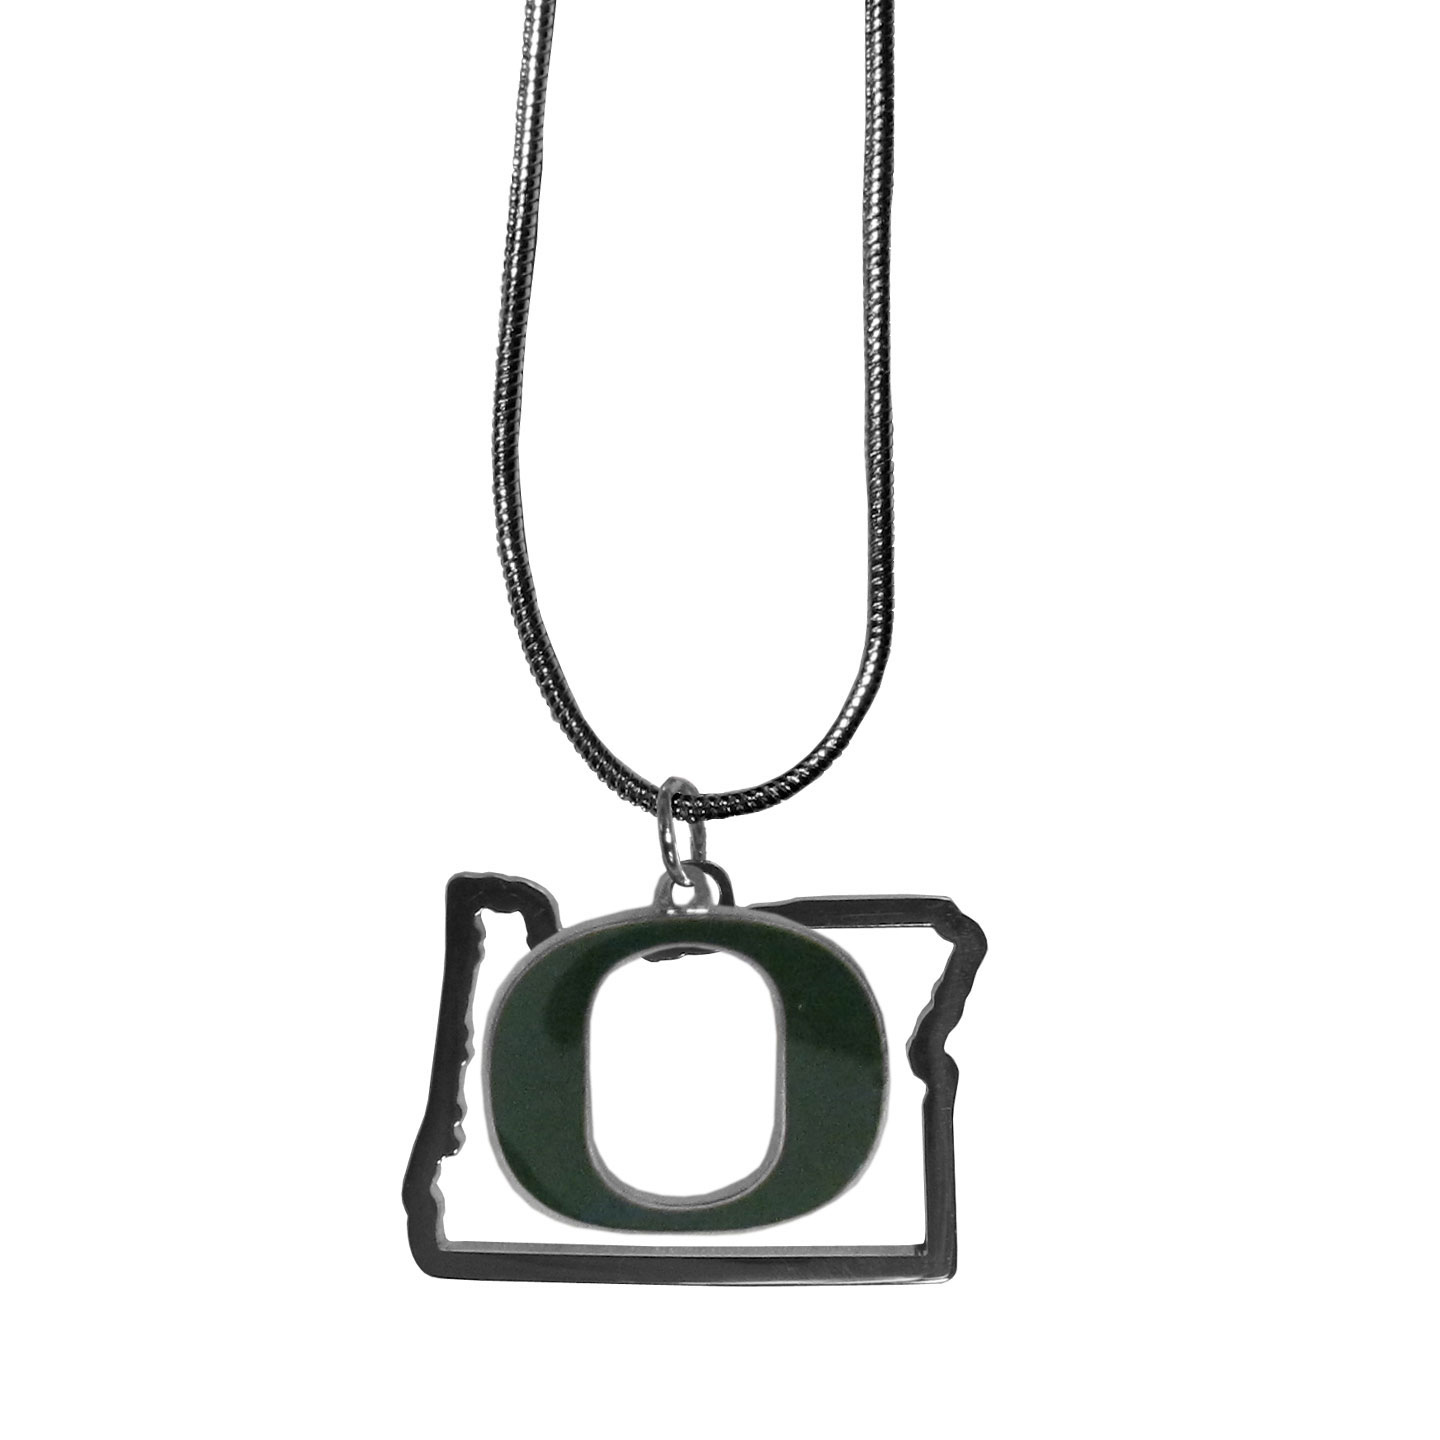 Oregon Ducks State Charm Necklace - Get in on the trend! State themes are a trend that just keeps getting more popular and these necklaces take the state style and give it a sporty twist with a Oregon Ducks added to the state outline charm. The come on a snake chain that is 22 inches long.